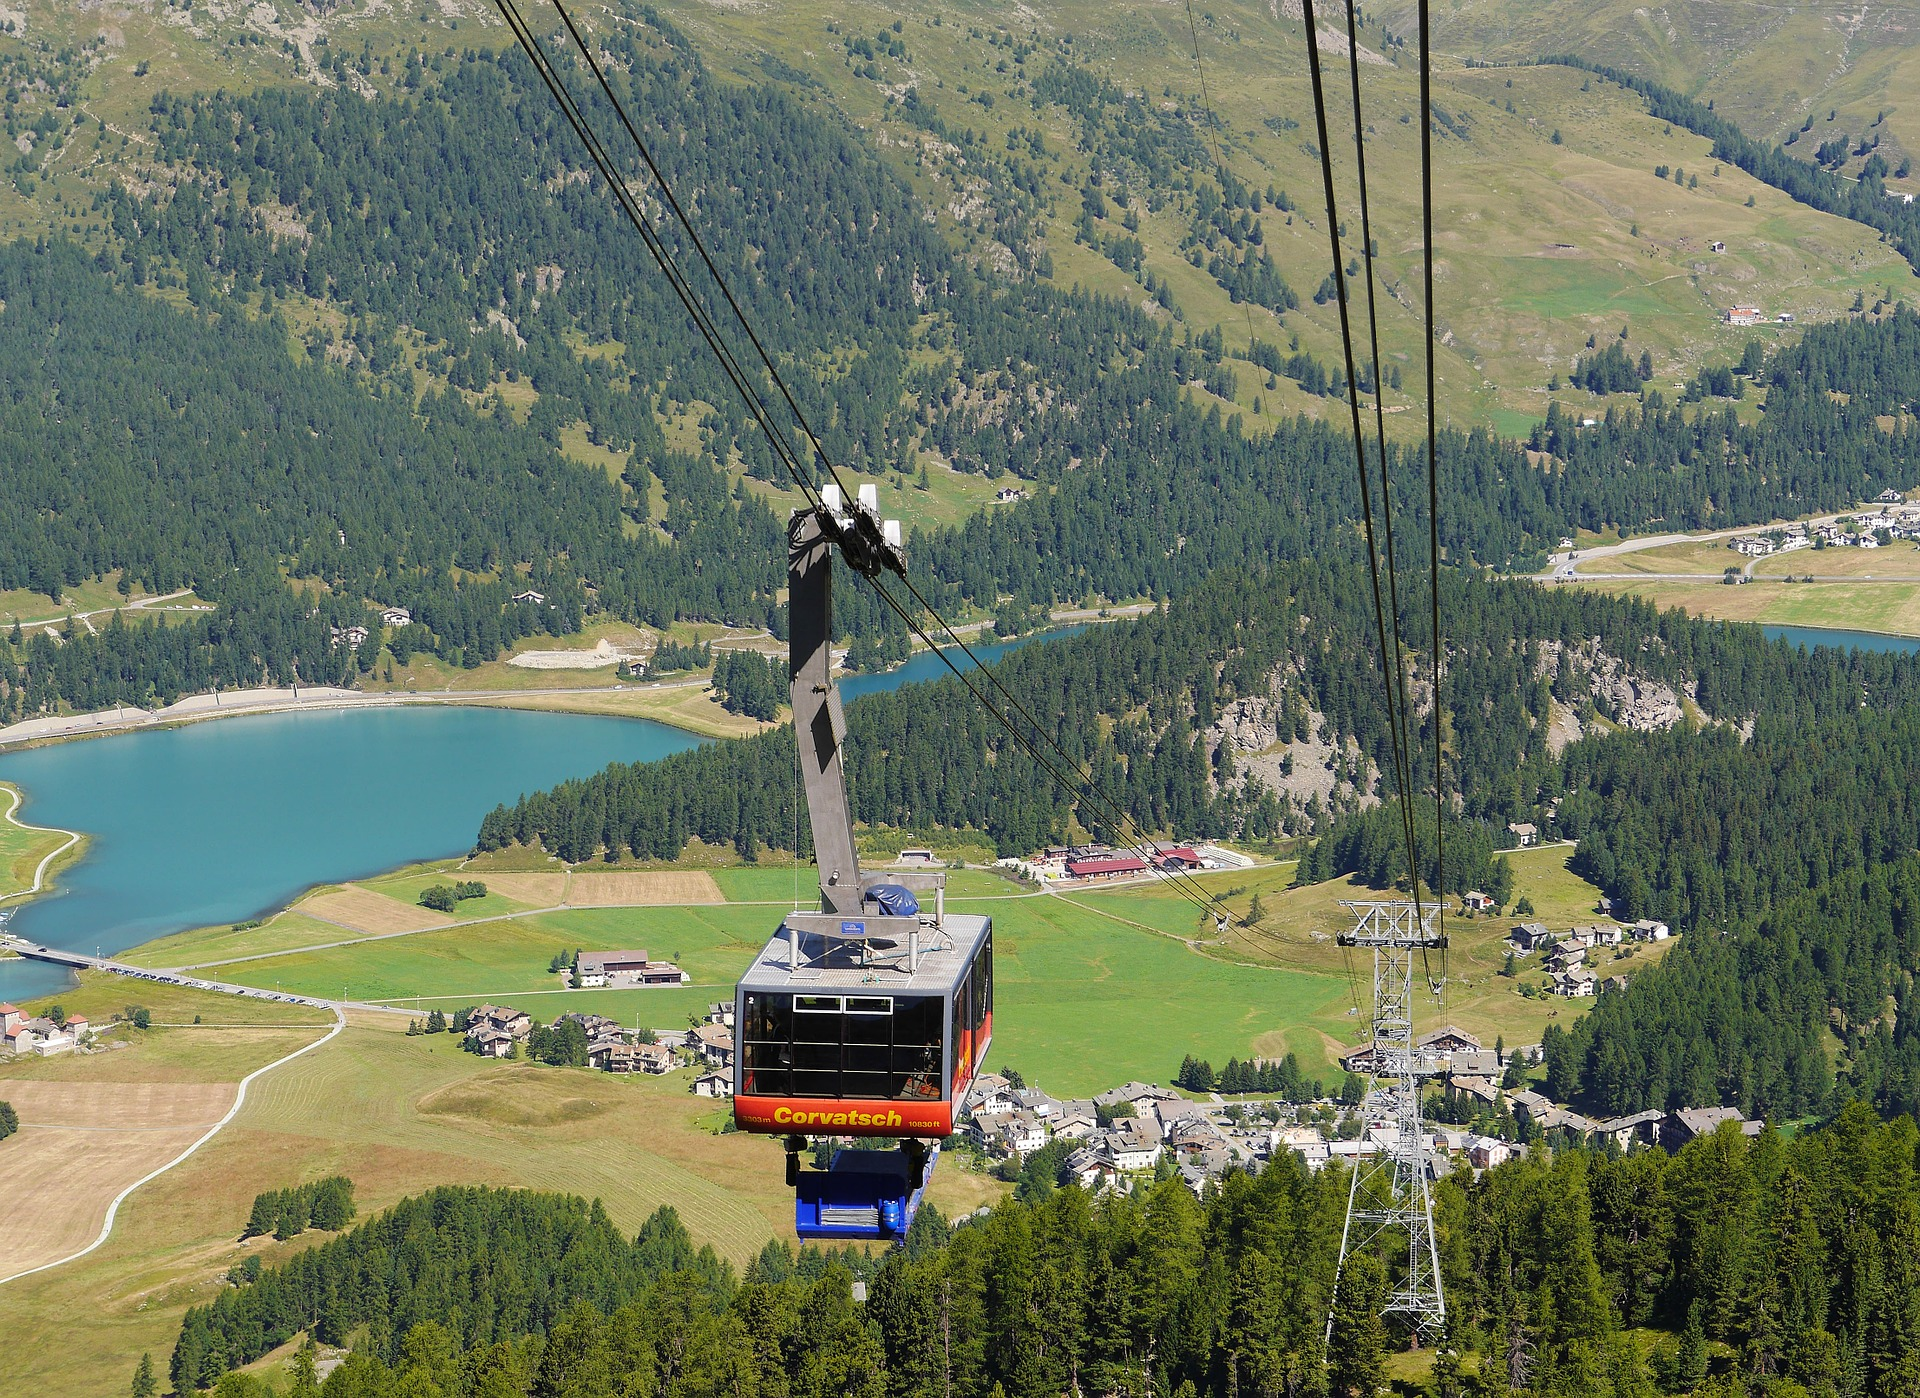 cable-car-1391925_1920